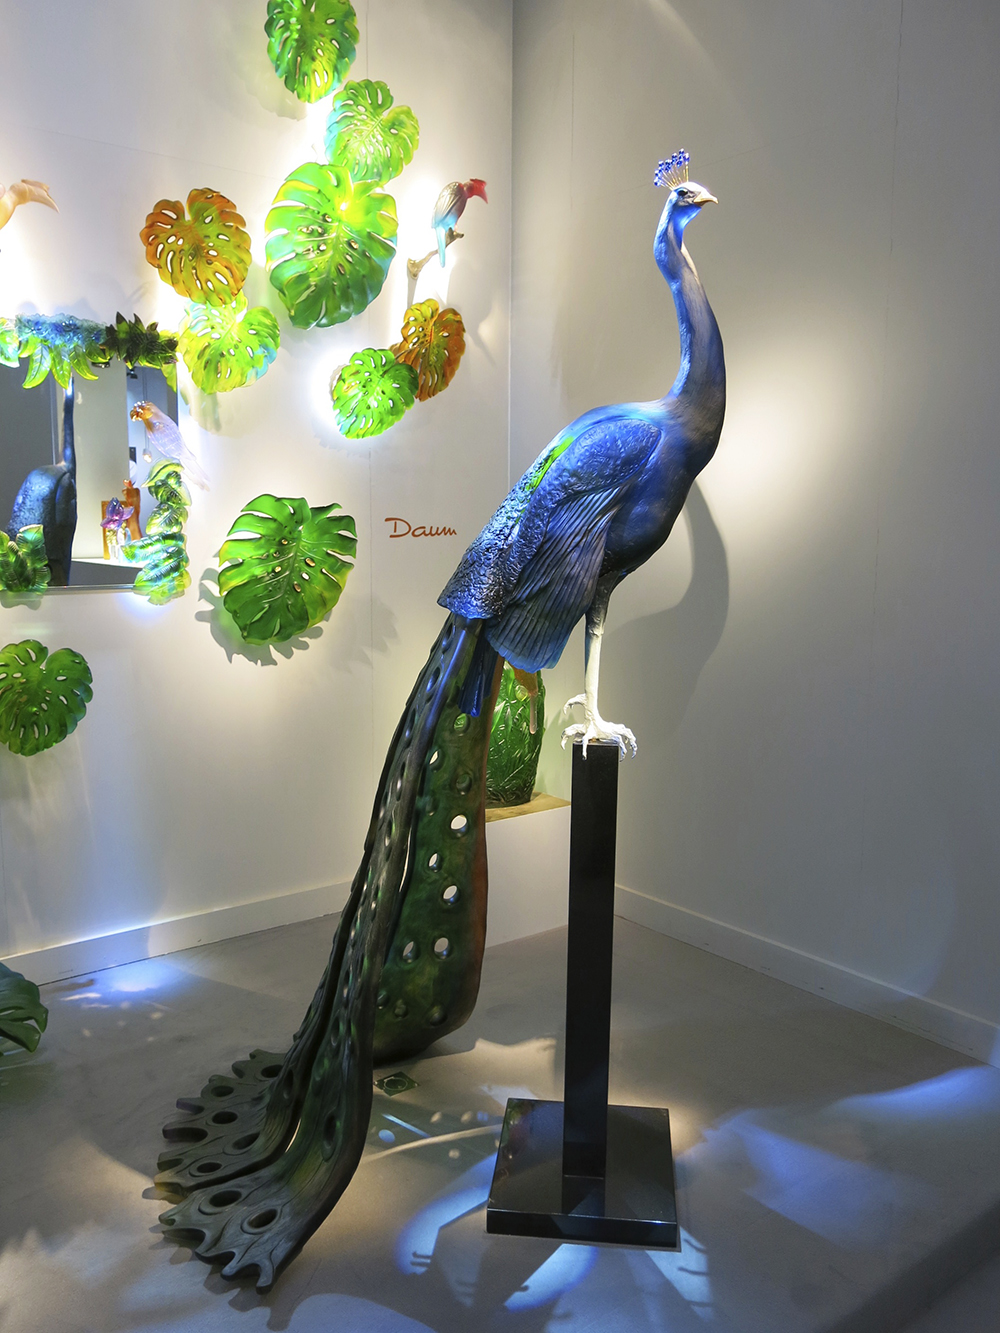 Peacock sculpture by Daum